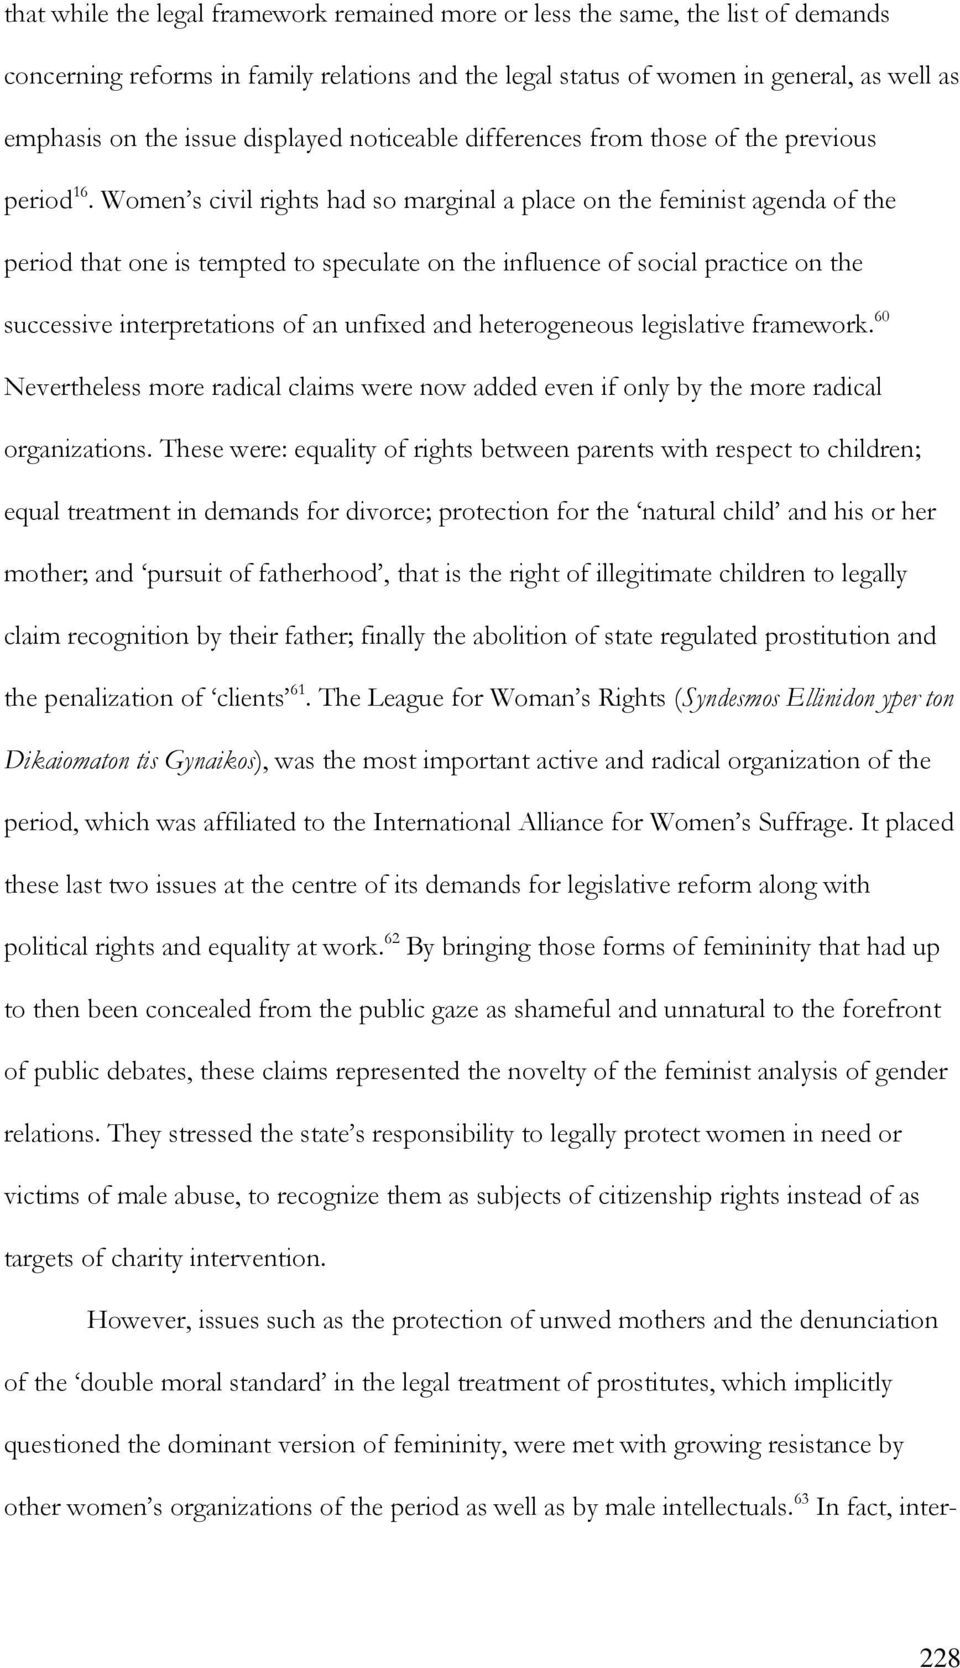 Women s civil rights had so marginal a place on the feminist agenda of the period that one is tempted to speculate on the influence of social practice on the successive interpretations of an unfixed